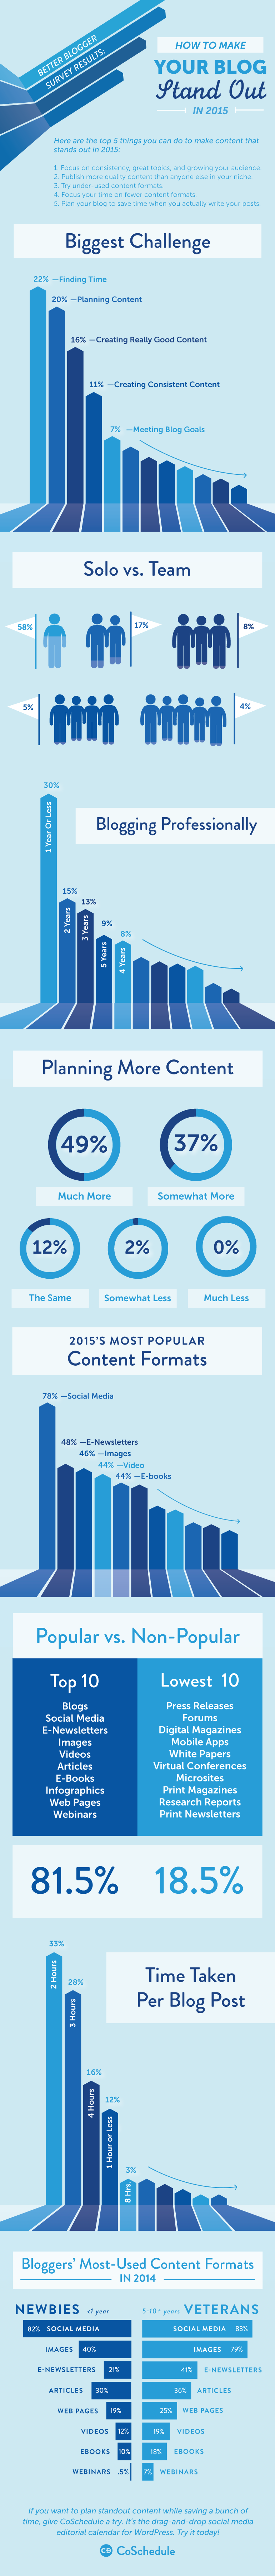 Blogging tips: How To Make Your Blog Stand Out In 2015 - #infographic